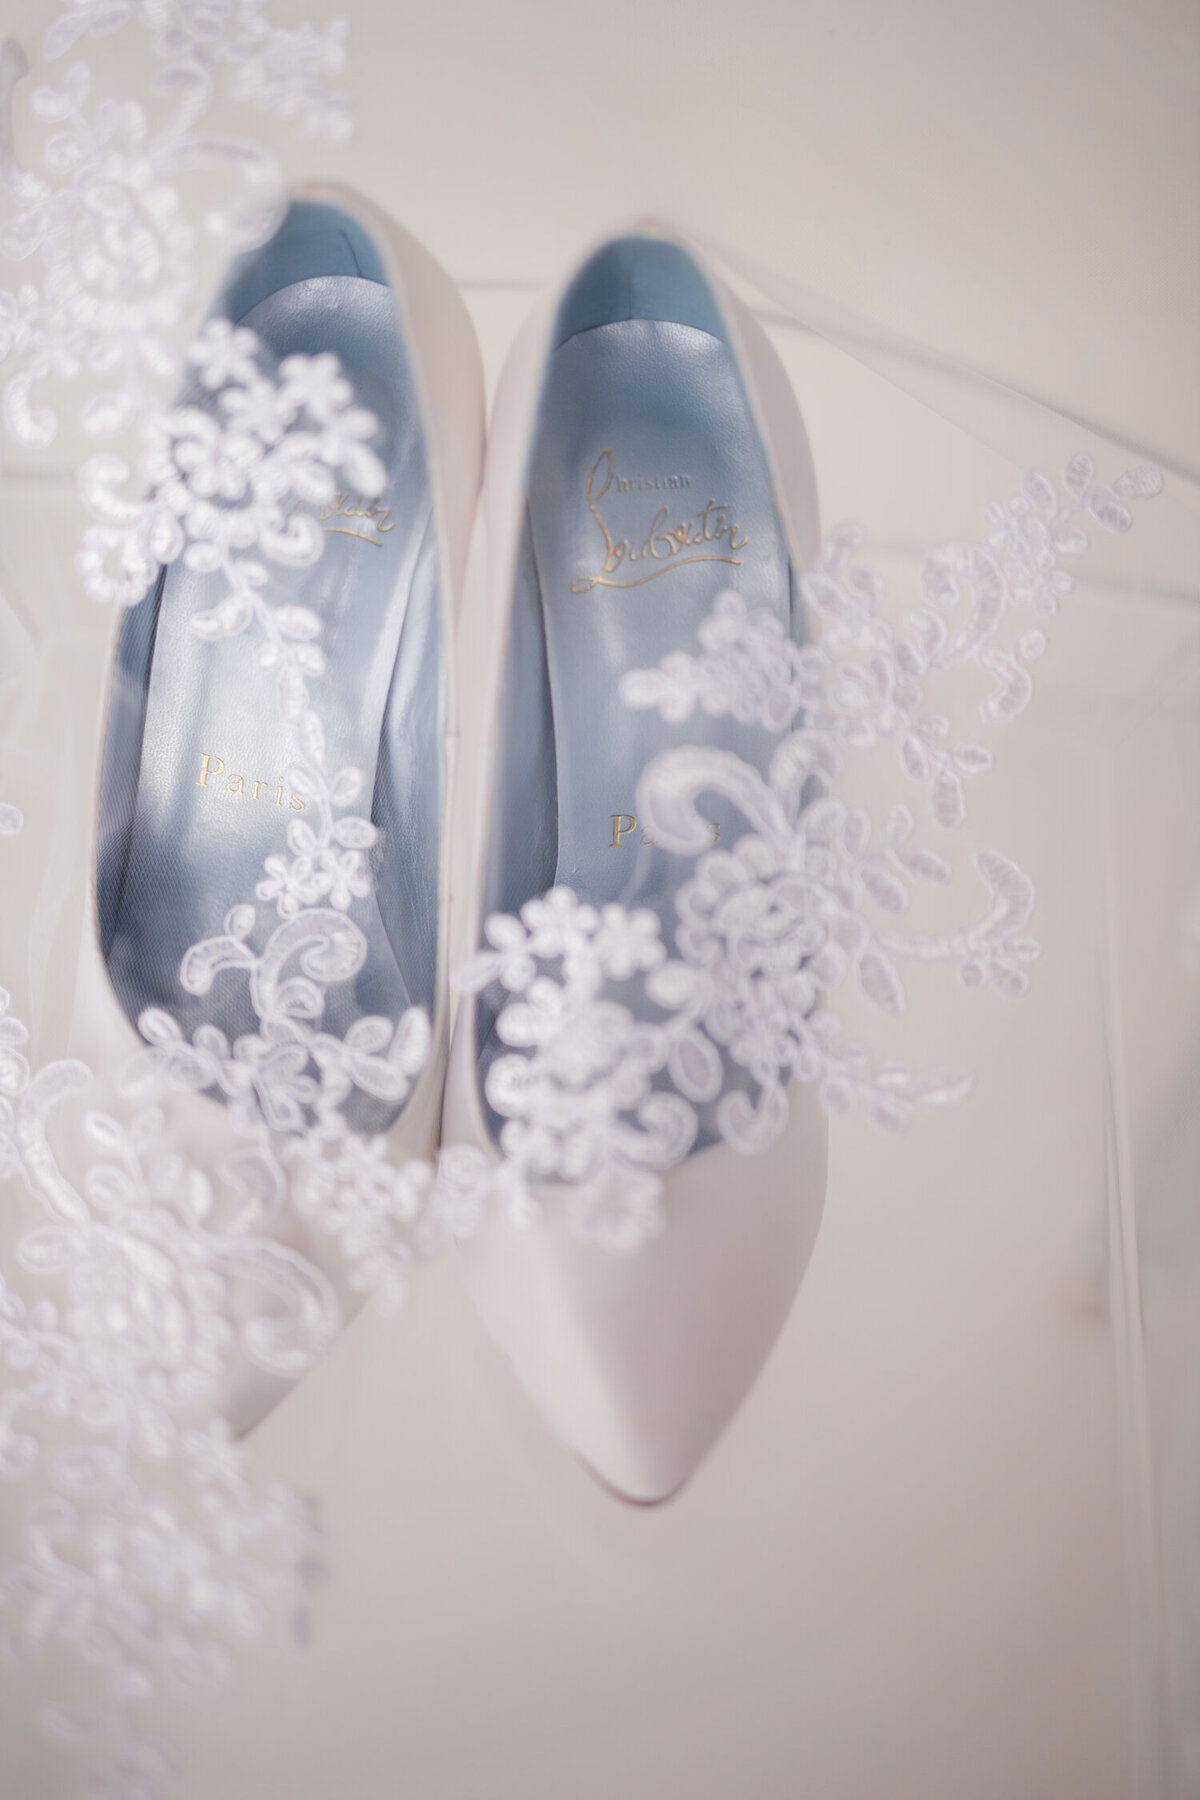 Louboutin Wedding Shoes & French Lace Veil Wedding Detail Shot